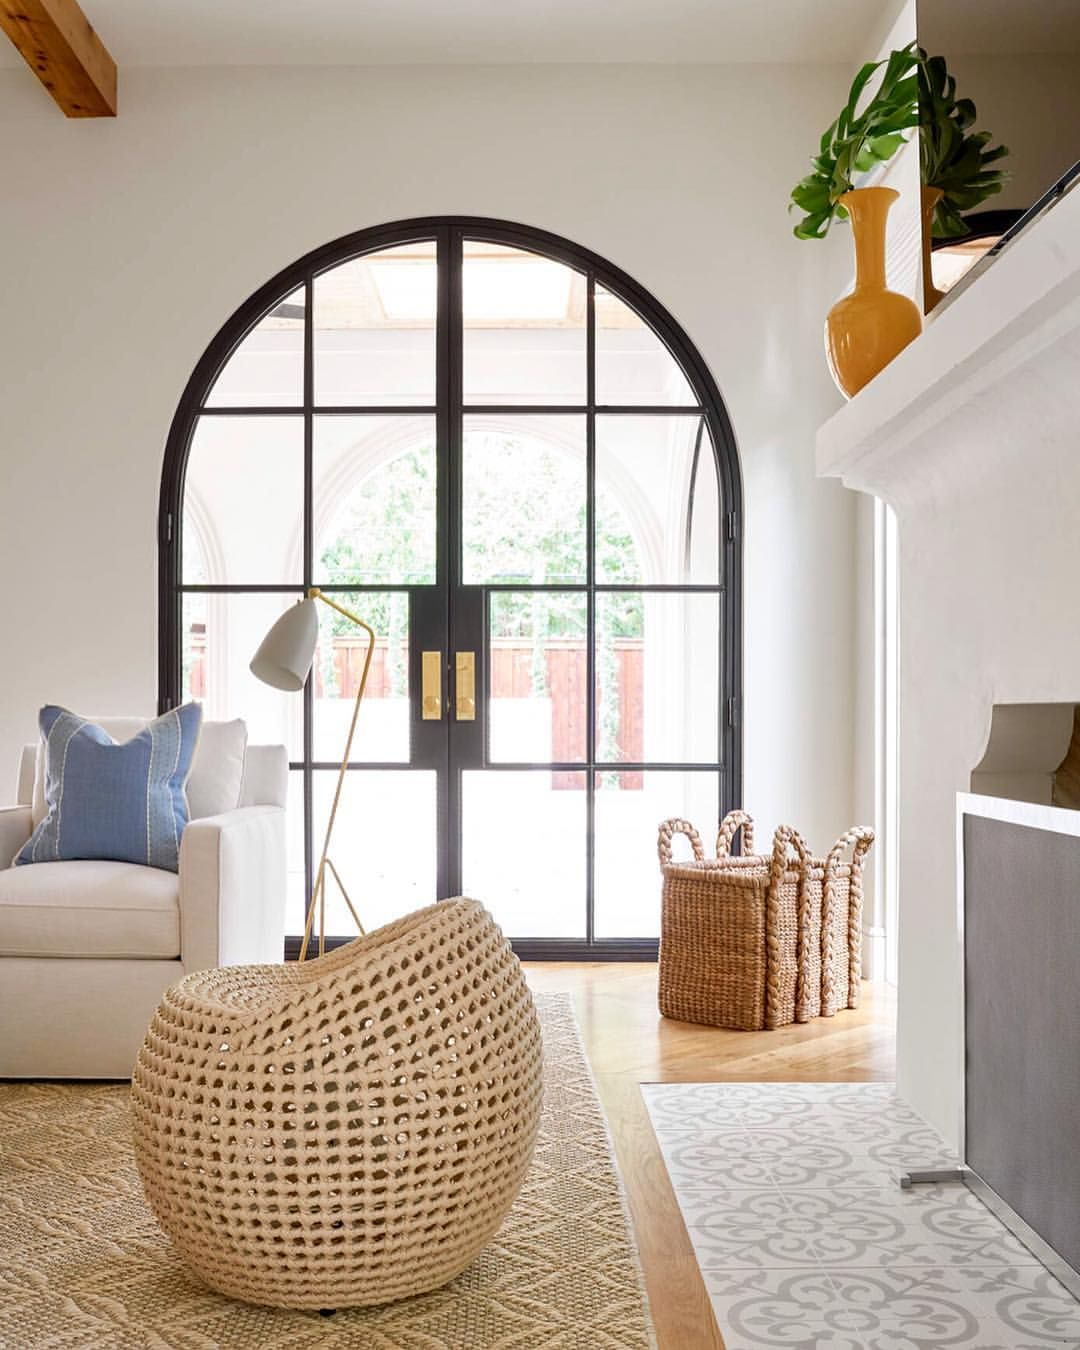 Pin by Renee Johnson on Home Sweet Home   Pinterest   Arch, Doors ...